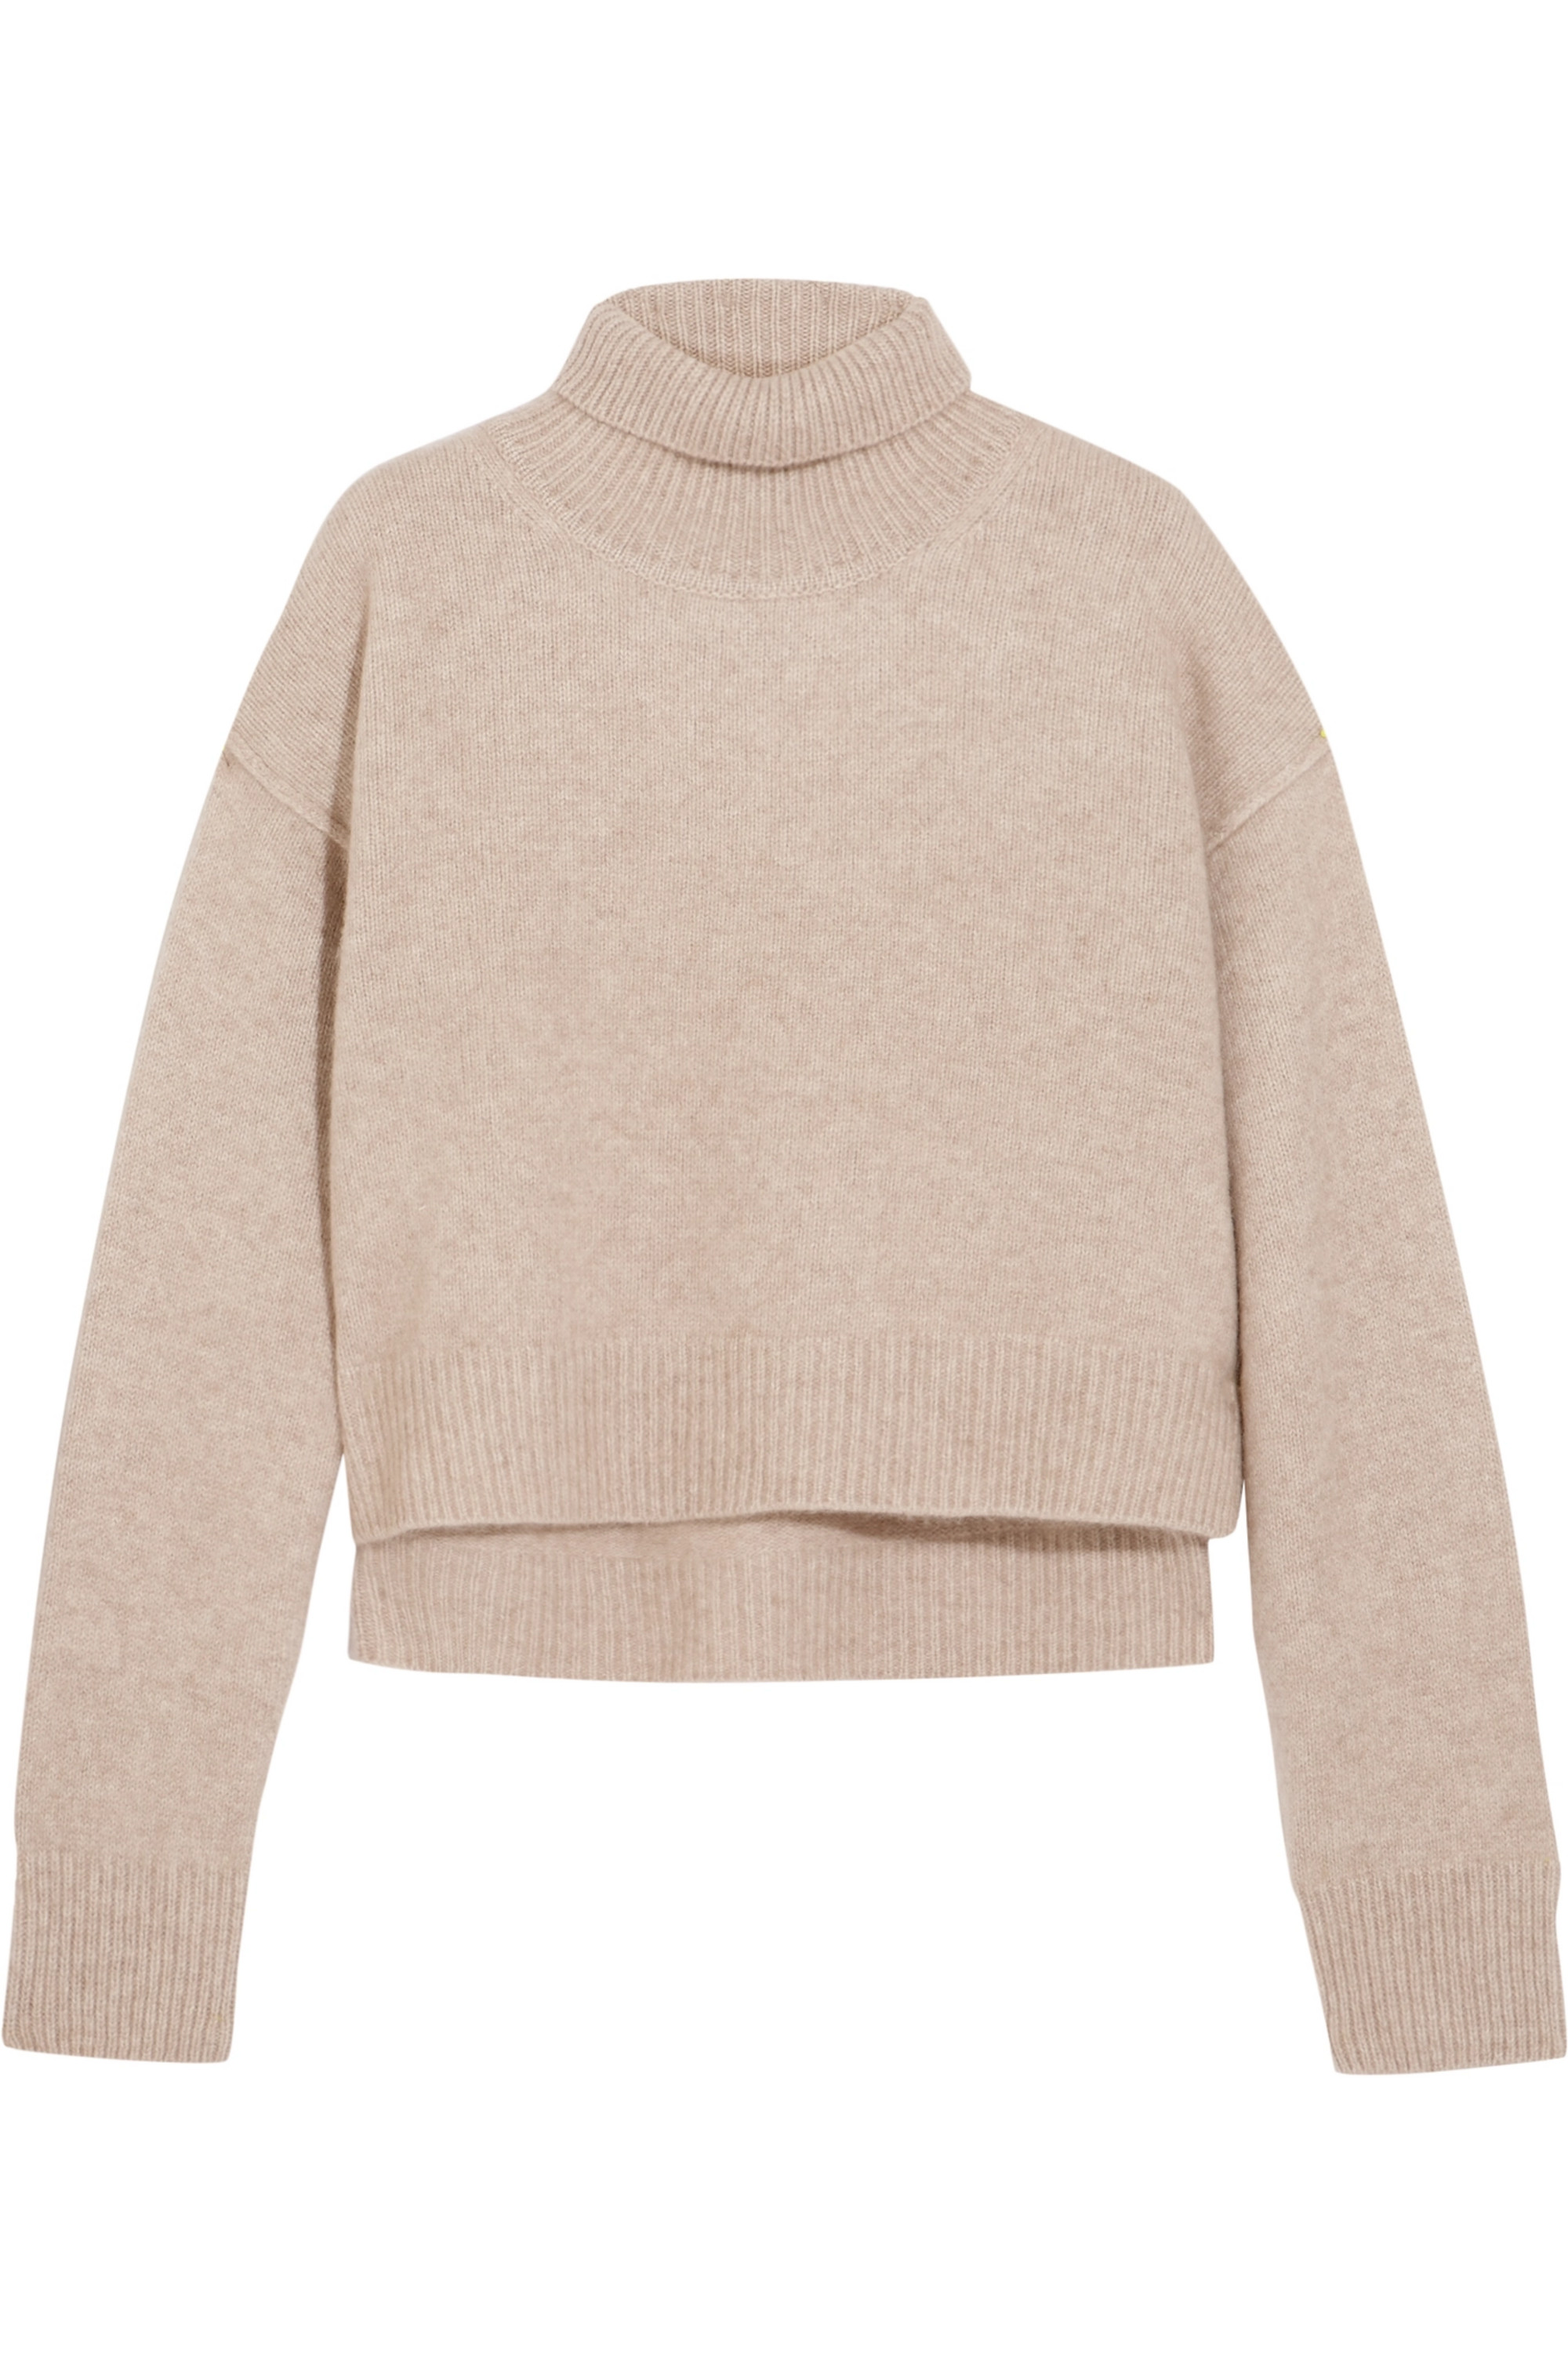 REJINA PYO Lyn cropped cashmere turtleneck sweater